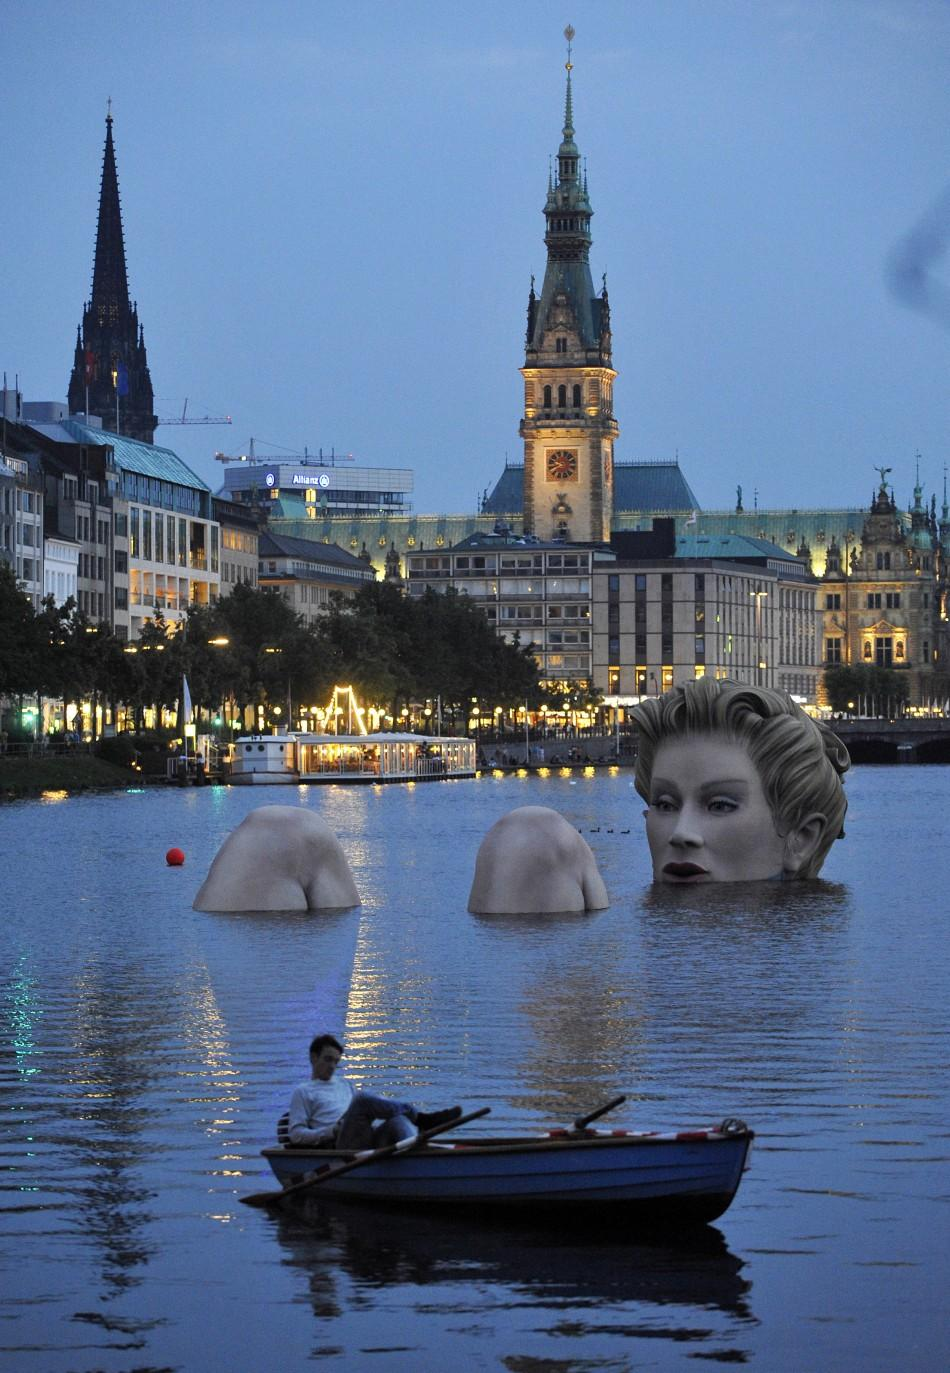 Man in a rowing boat floats near a 'mermaid' sculpture created by Oliver Voss on Alster lake in Hamburg